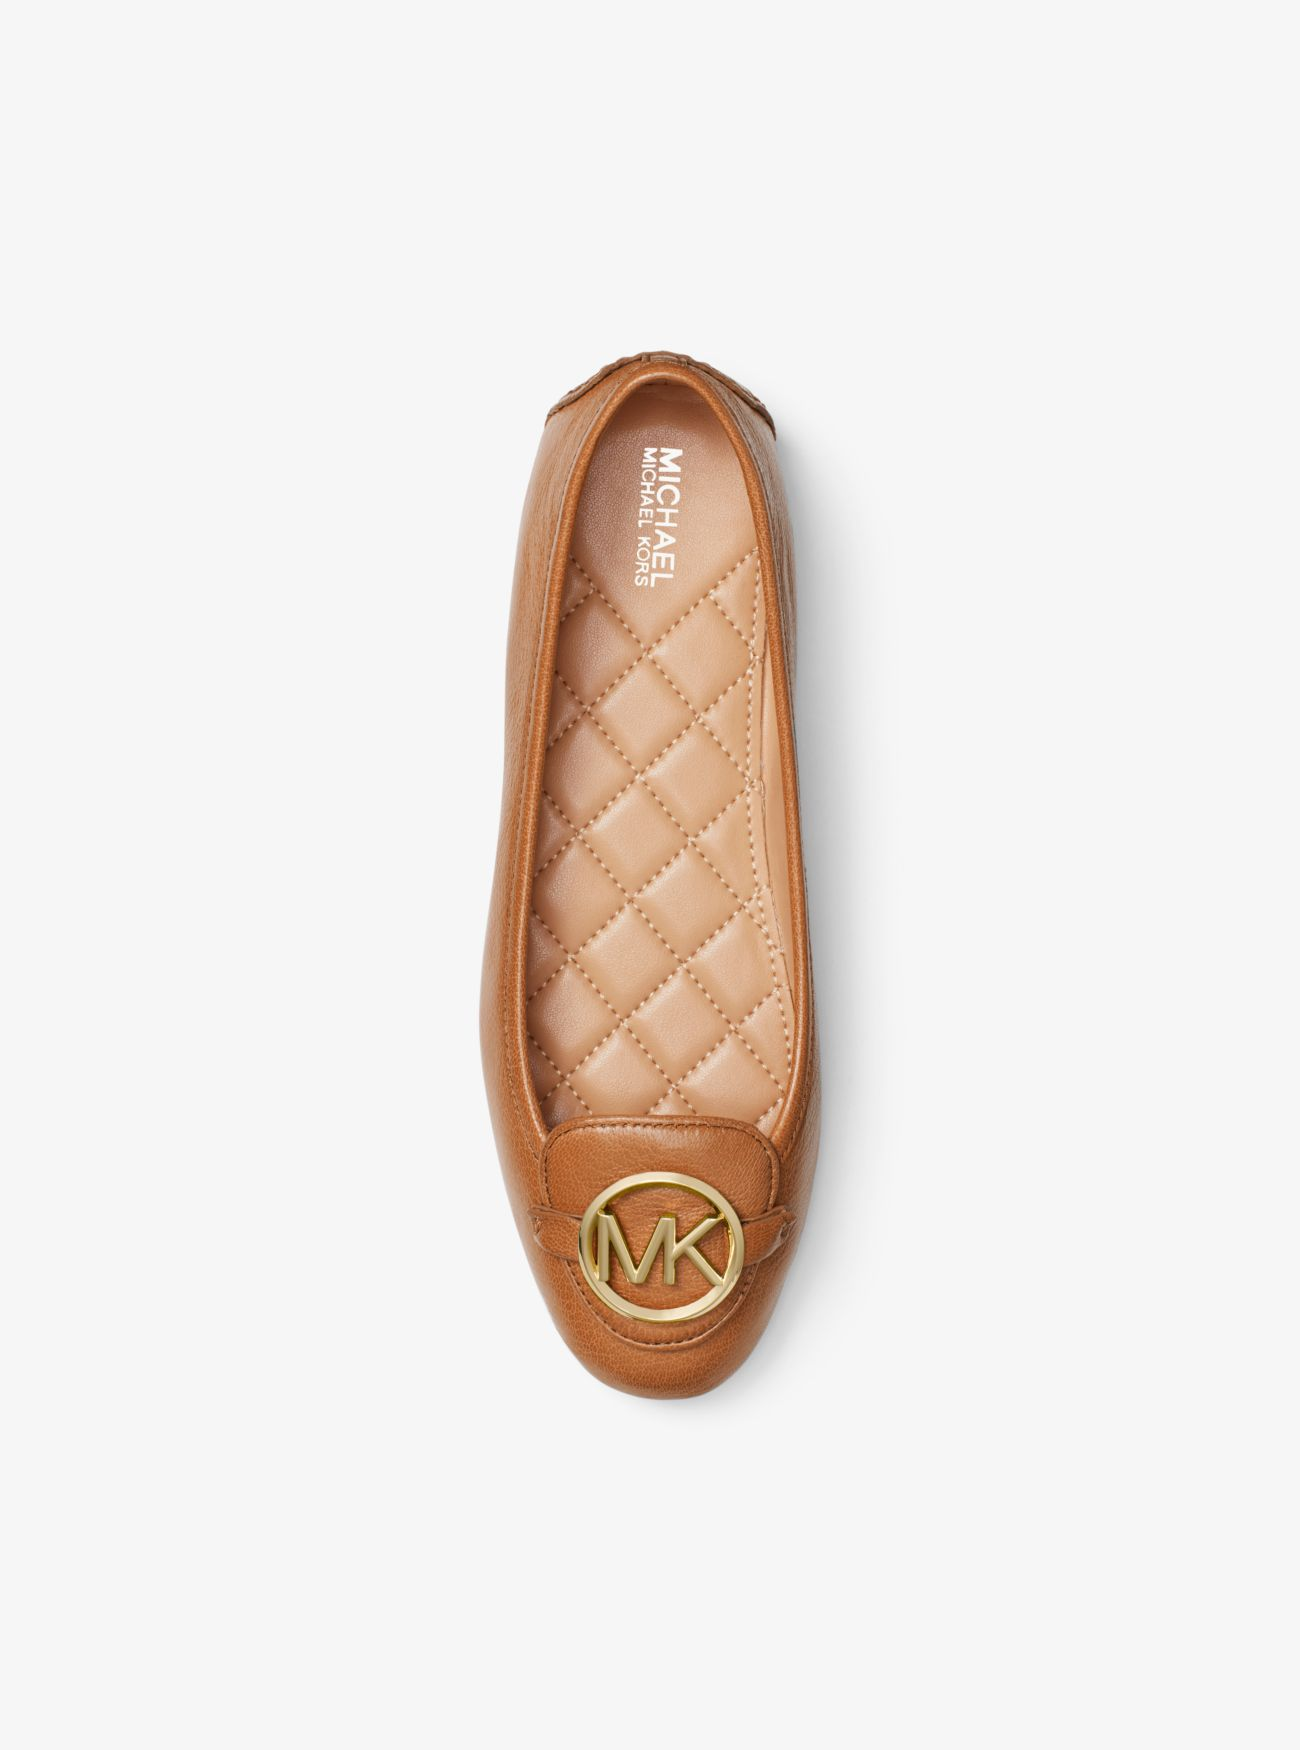 08bff8874e80 Lillie Leather Moccasin Lillie Leather Moccasin Lillie Leather Moccasin. MICHAEL  Michael Kors